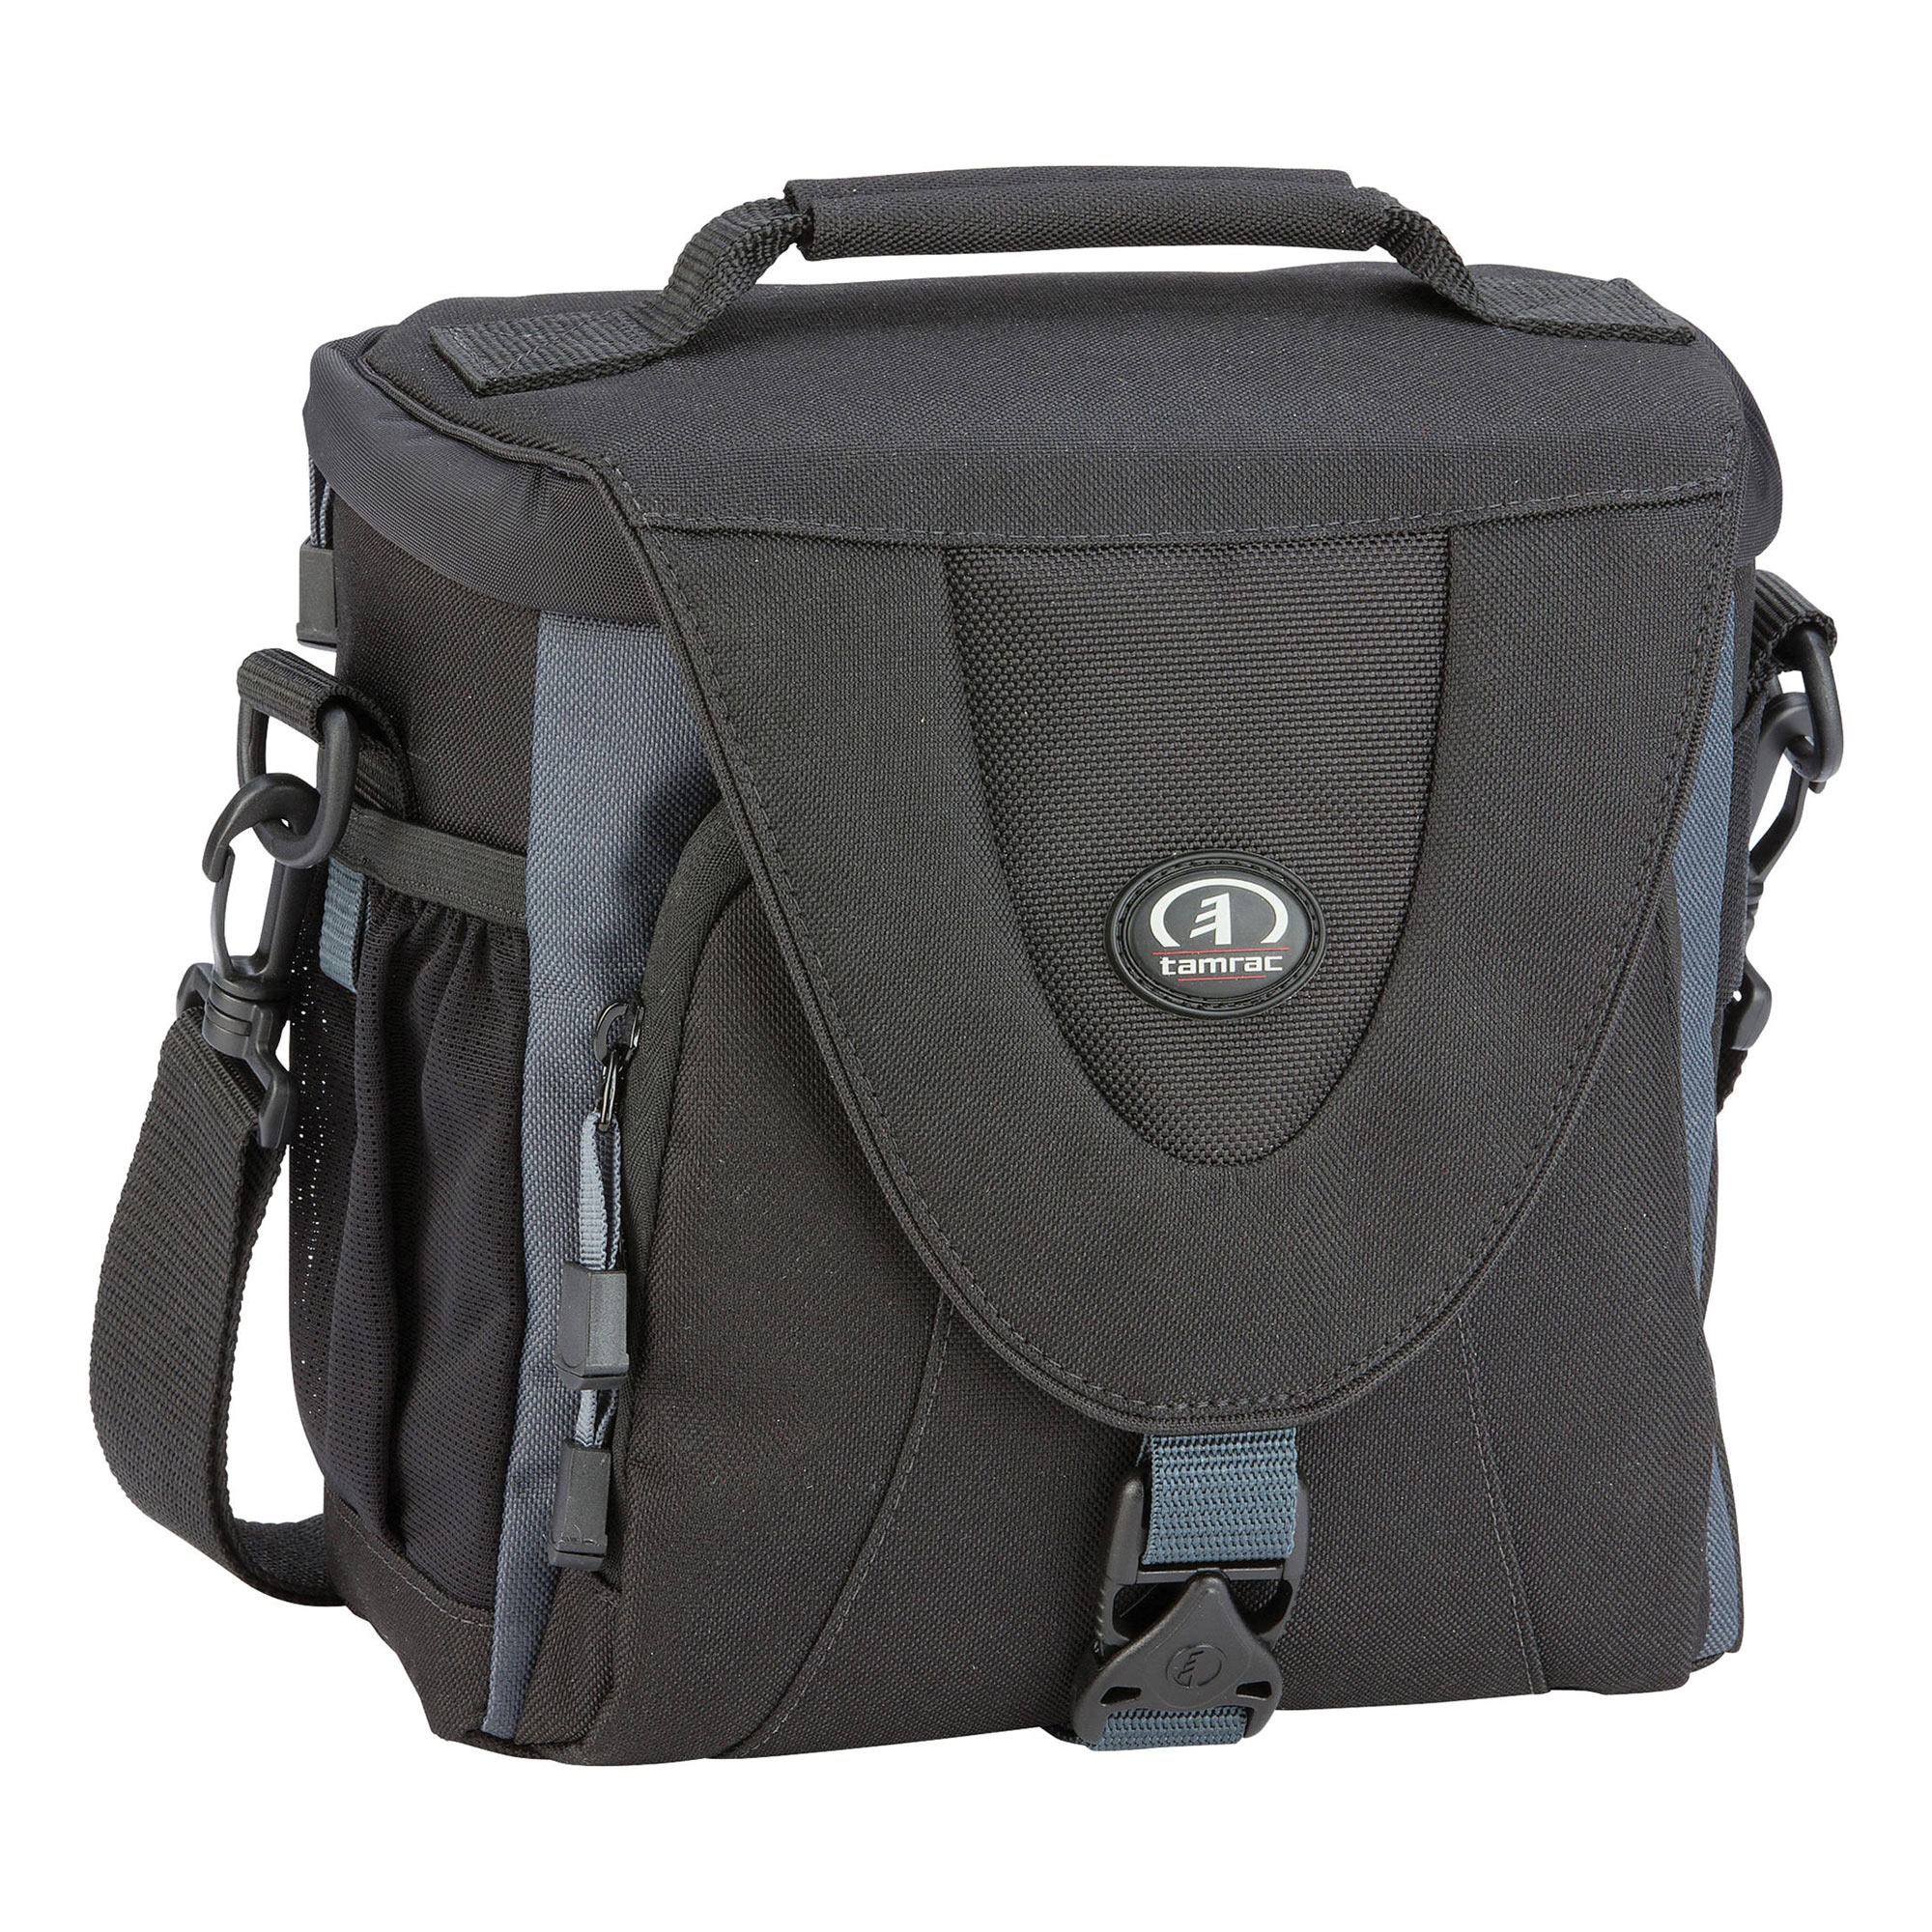 Explorer 42 Camera Bag (Black)